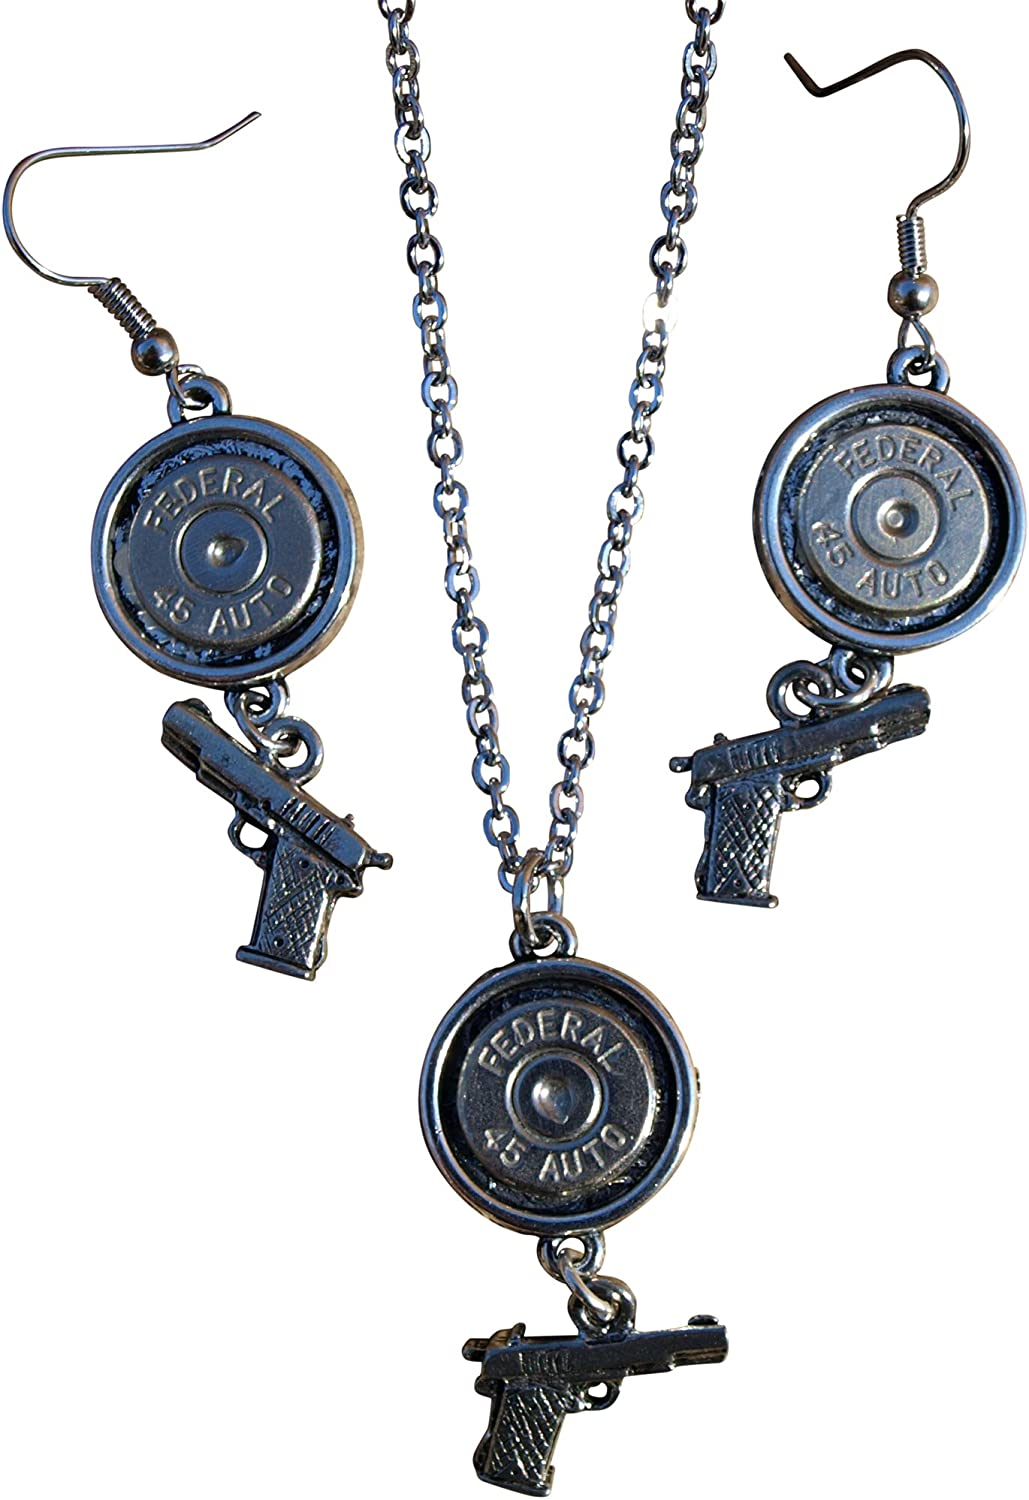 Available with or Without Crystals Fashion Bullet Necklace /& Earrings W Nickel 45s /& Handgun Charms